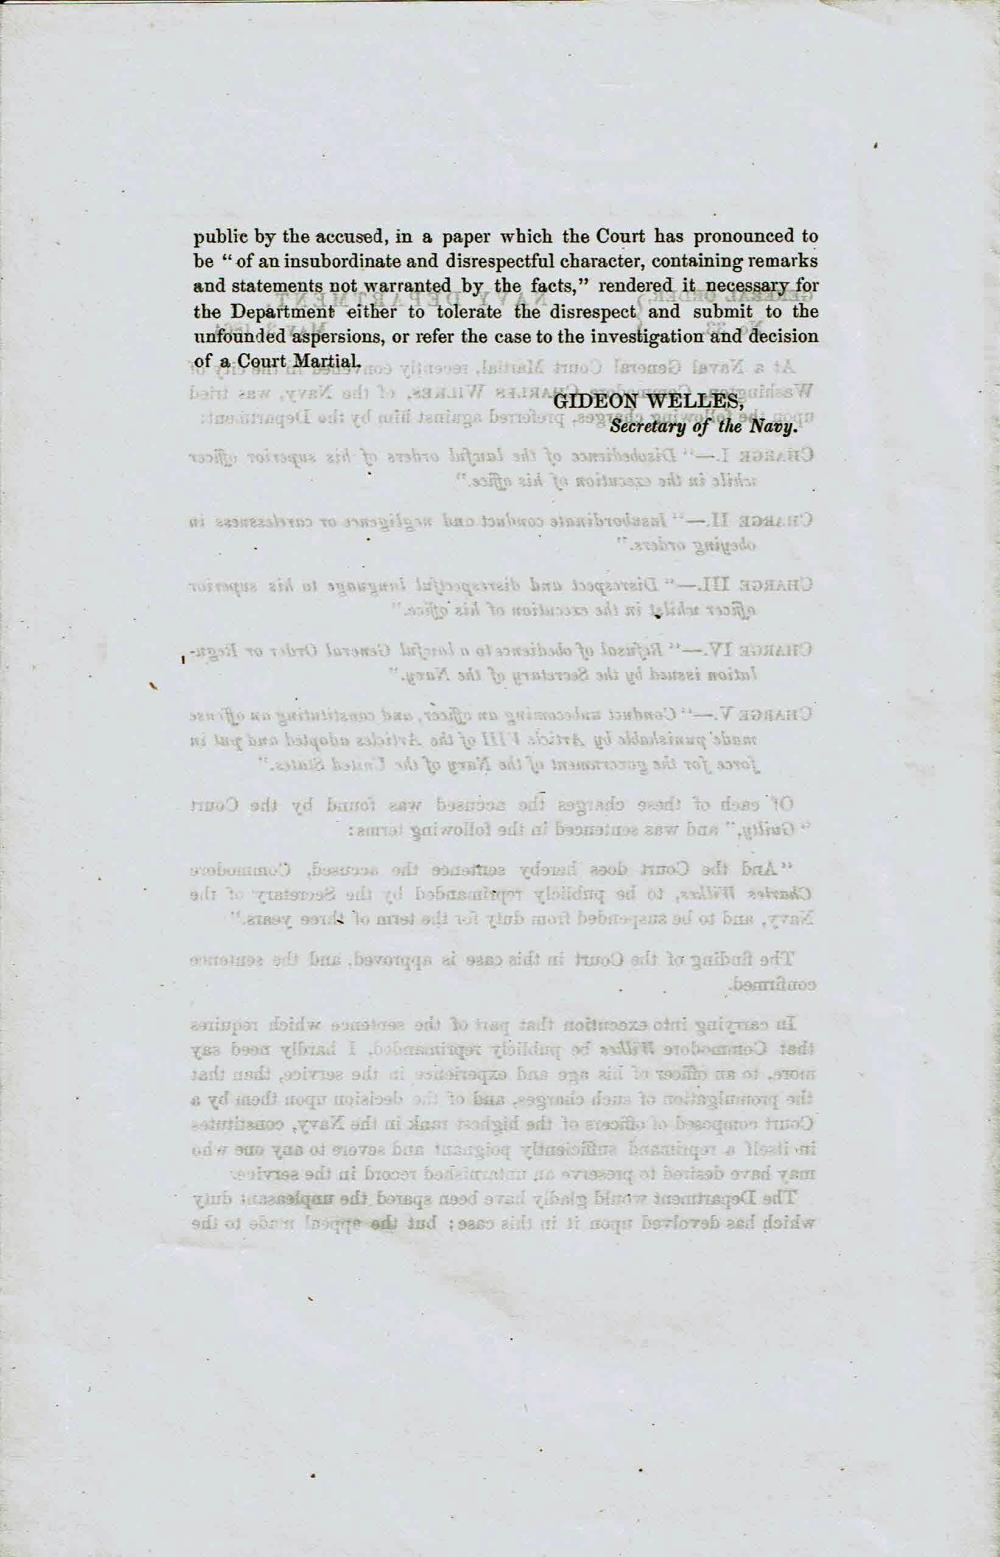 Gideon Welles Printed Order Court Martial Finds Naval Commander at the Center of the Trent Affair Guilty of Insubordination and Disobedience in Later Conduct